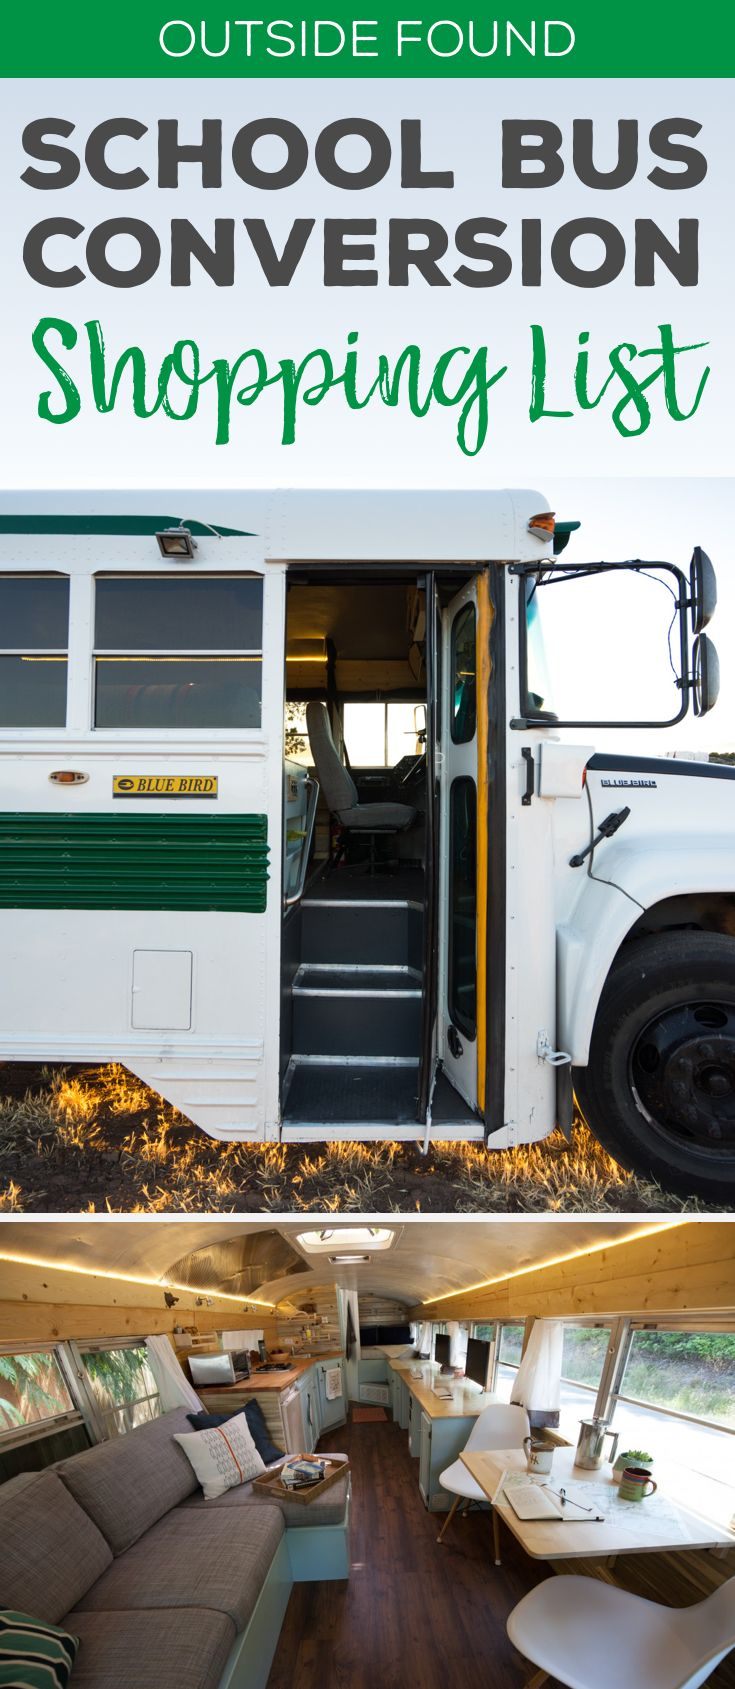 Bus hardware roundup airstream renovation school bus - School bus table and chair ...